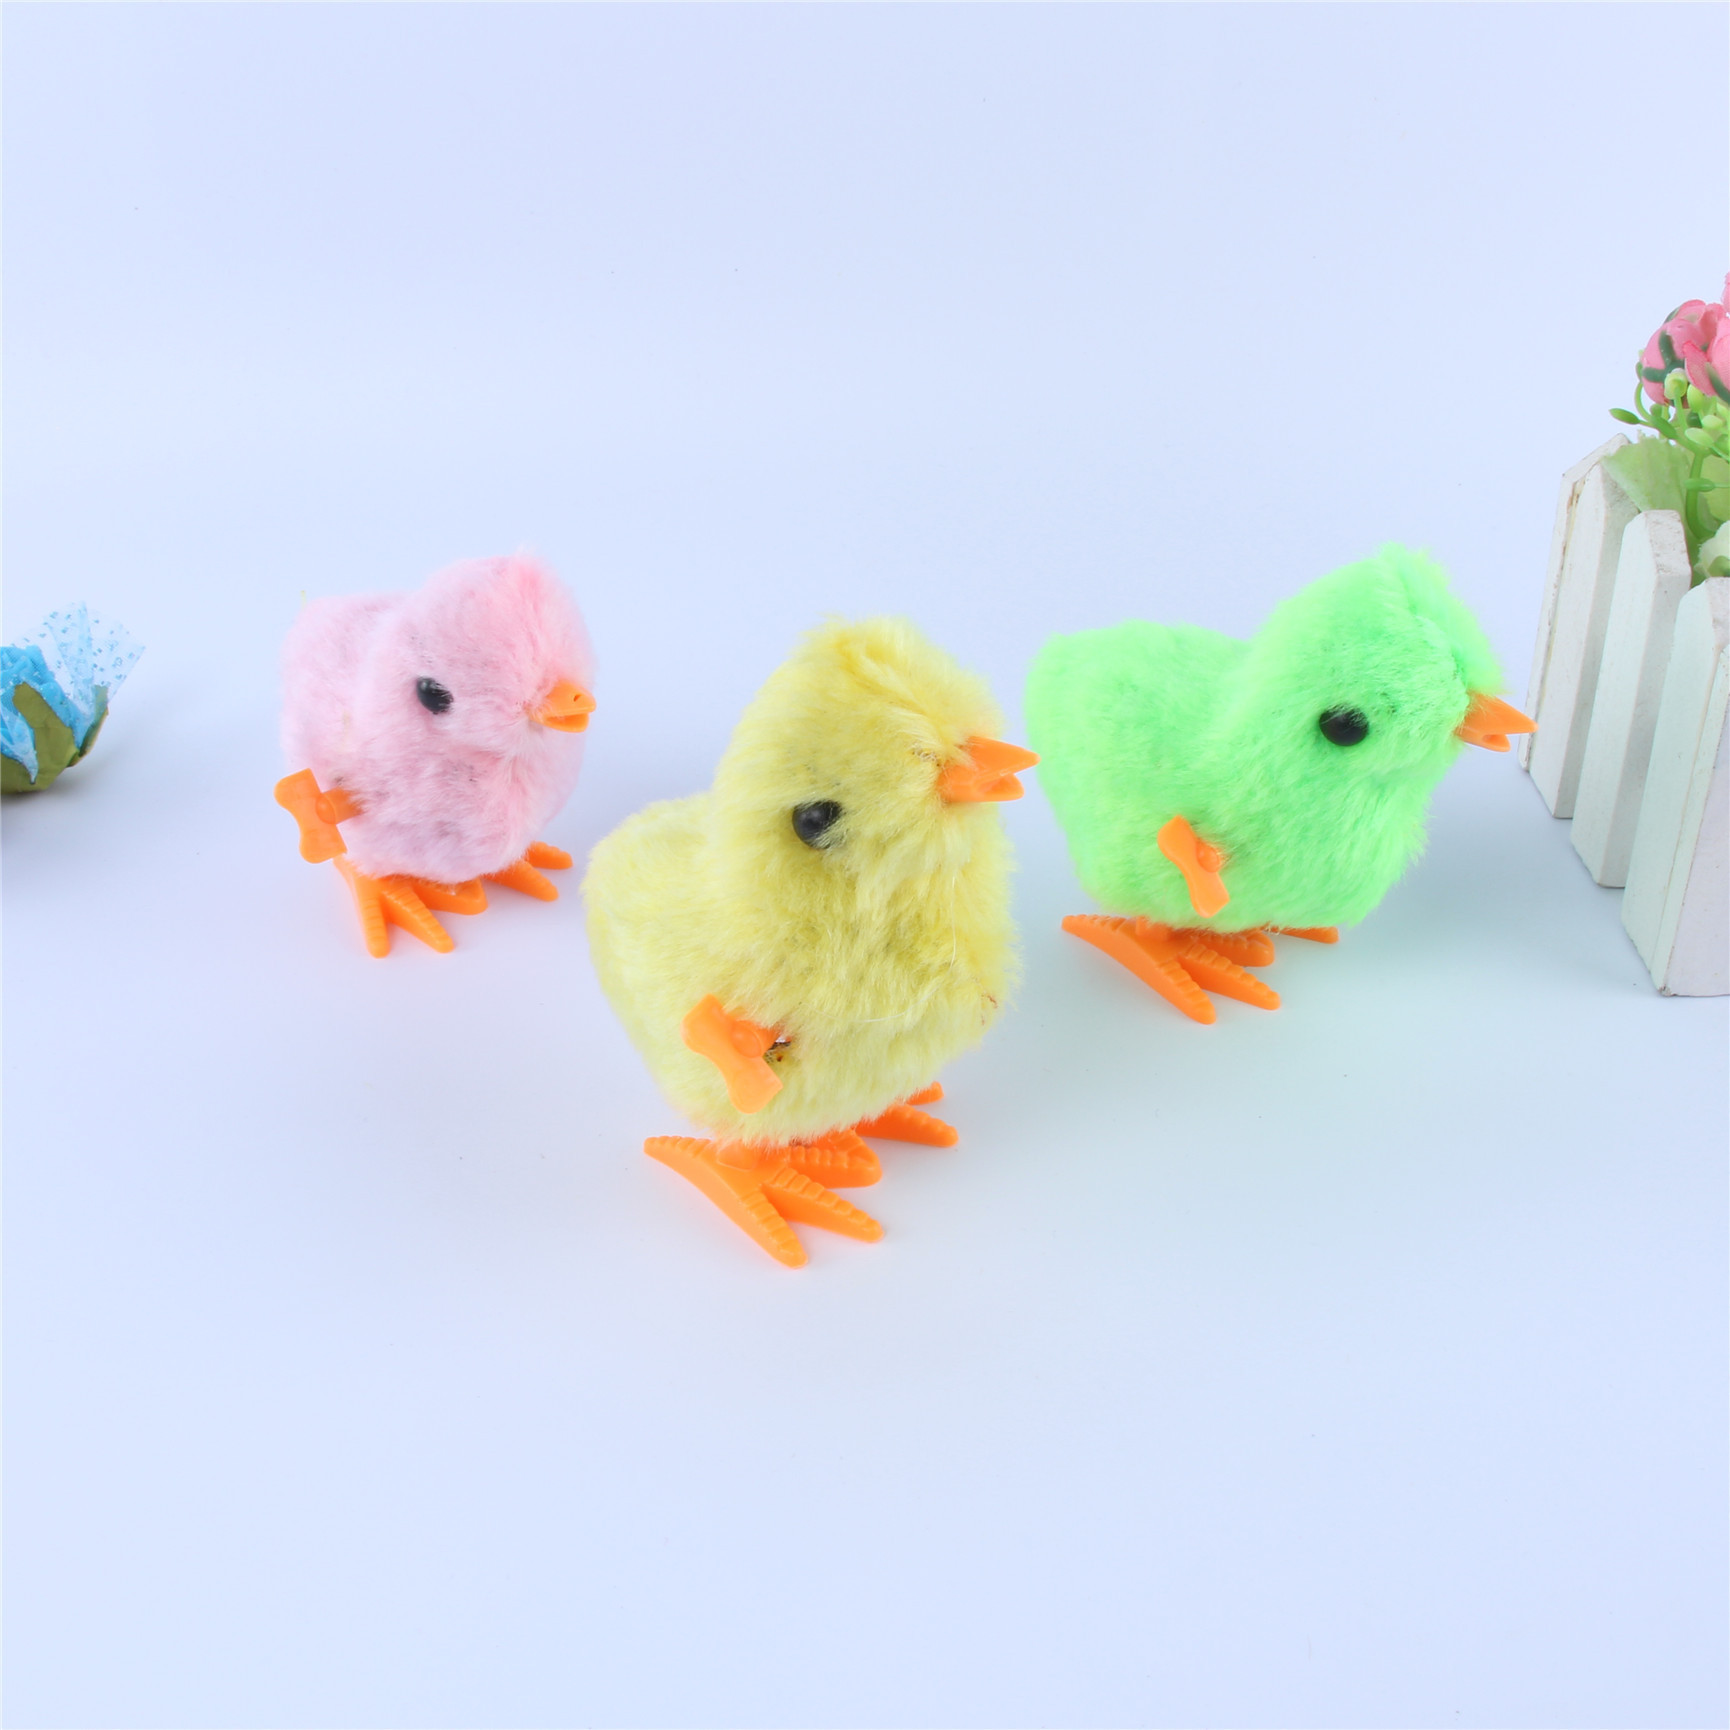 Cute Plush Chicken Toy Winding Spring Chickens Baby Favorite Hot Children Stall Small Toy Wholesale